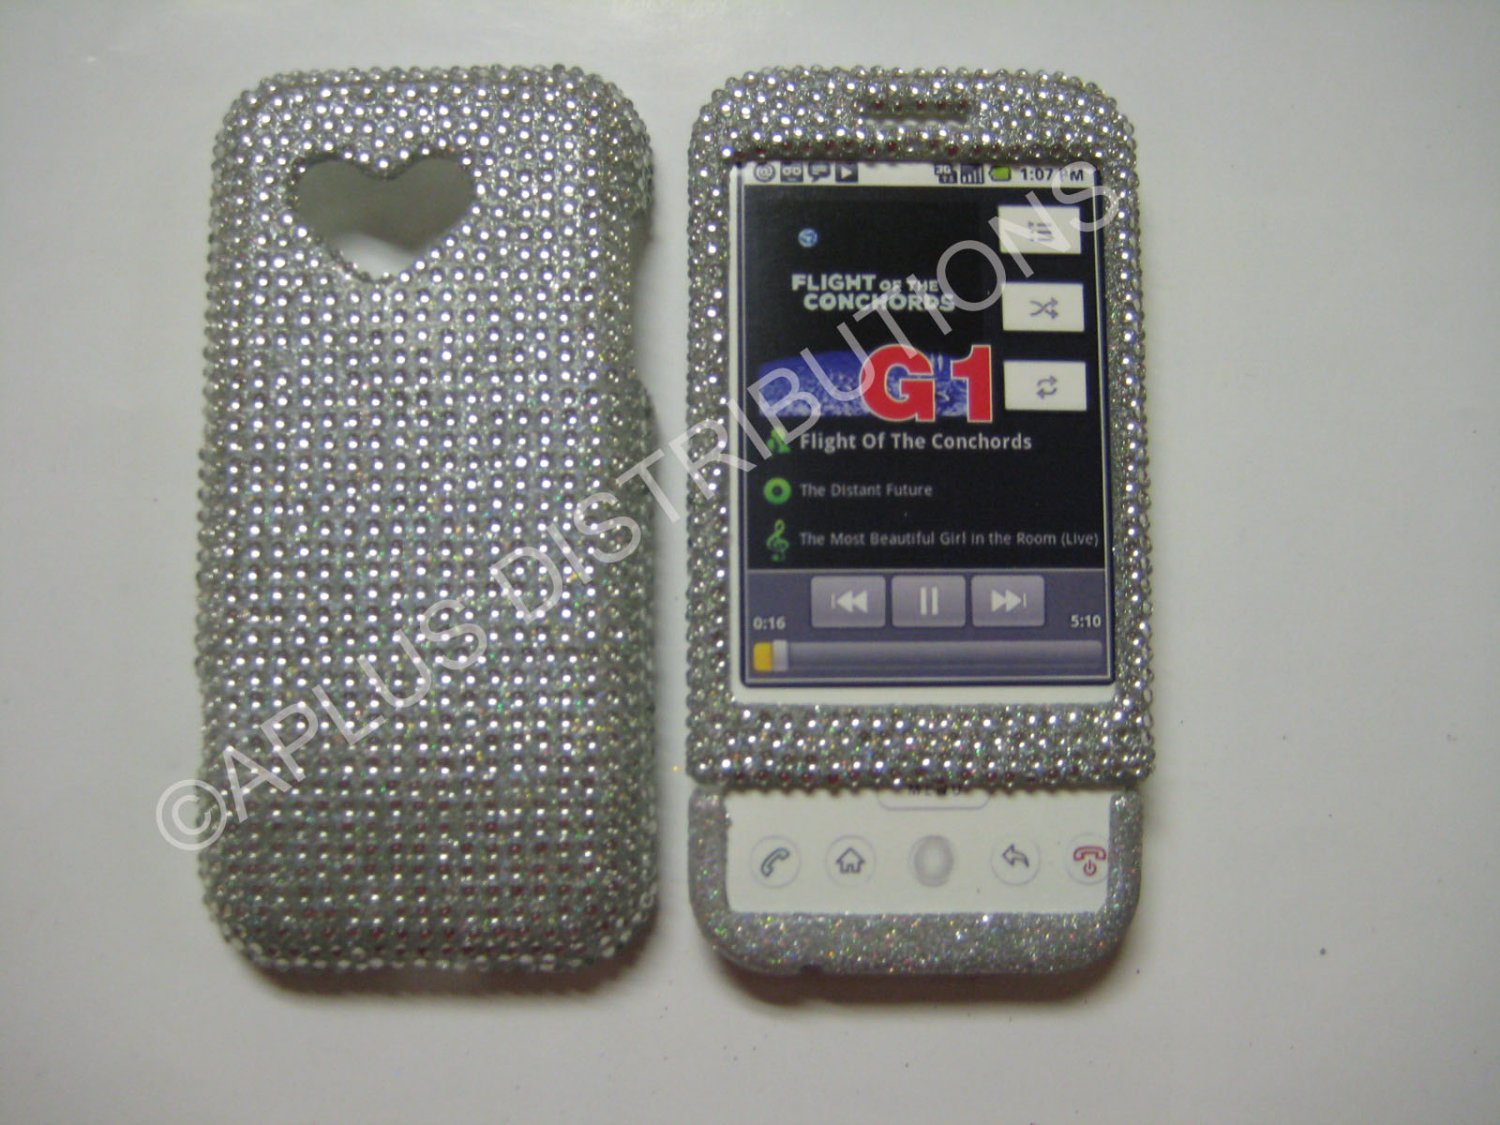 New Silver Solid Design Bling Diamond Case For HTC G1 Dream - (0004)